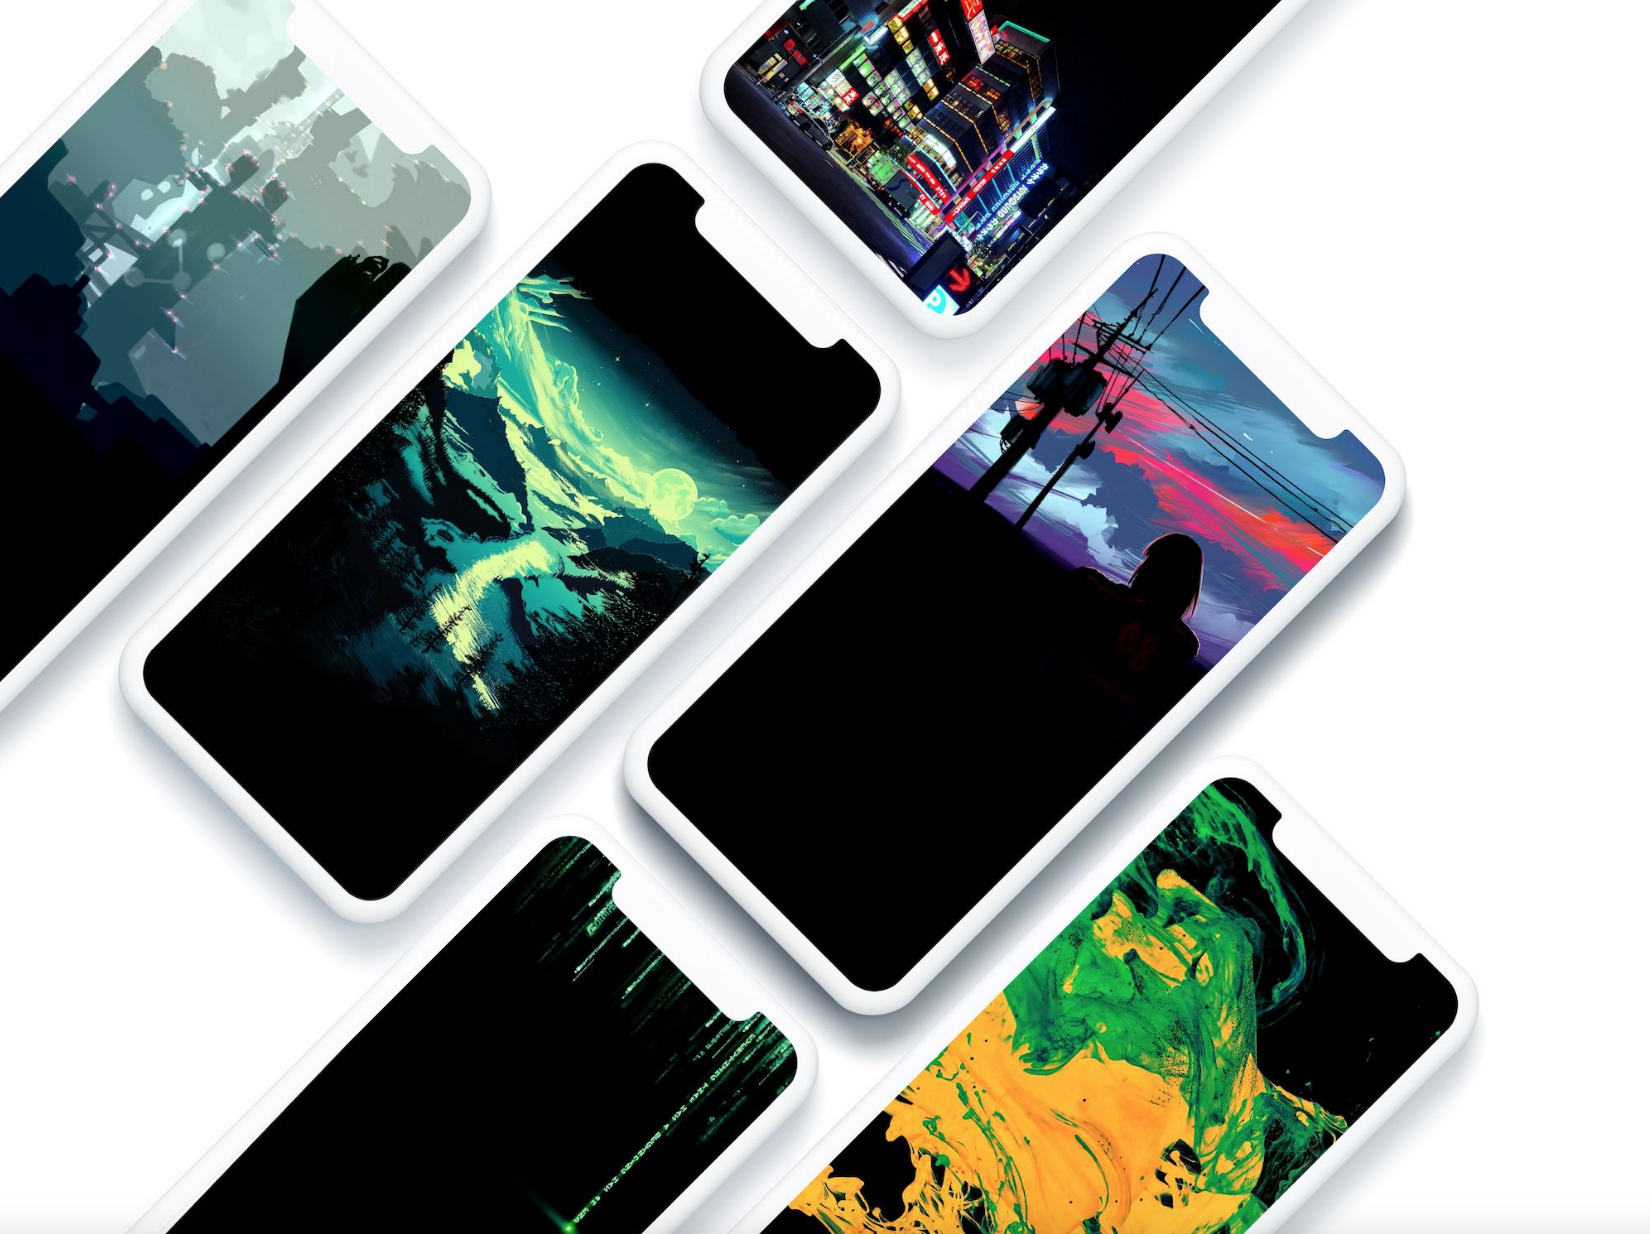 Top 5 Wallpaper Apps For iPhone 11 Pro   TheAppleGoogle 1650x1234